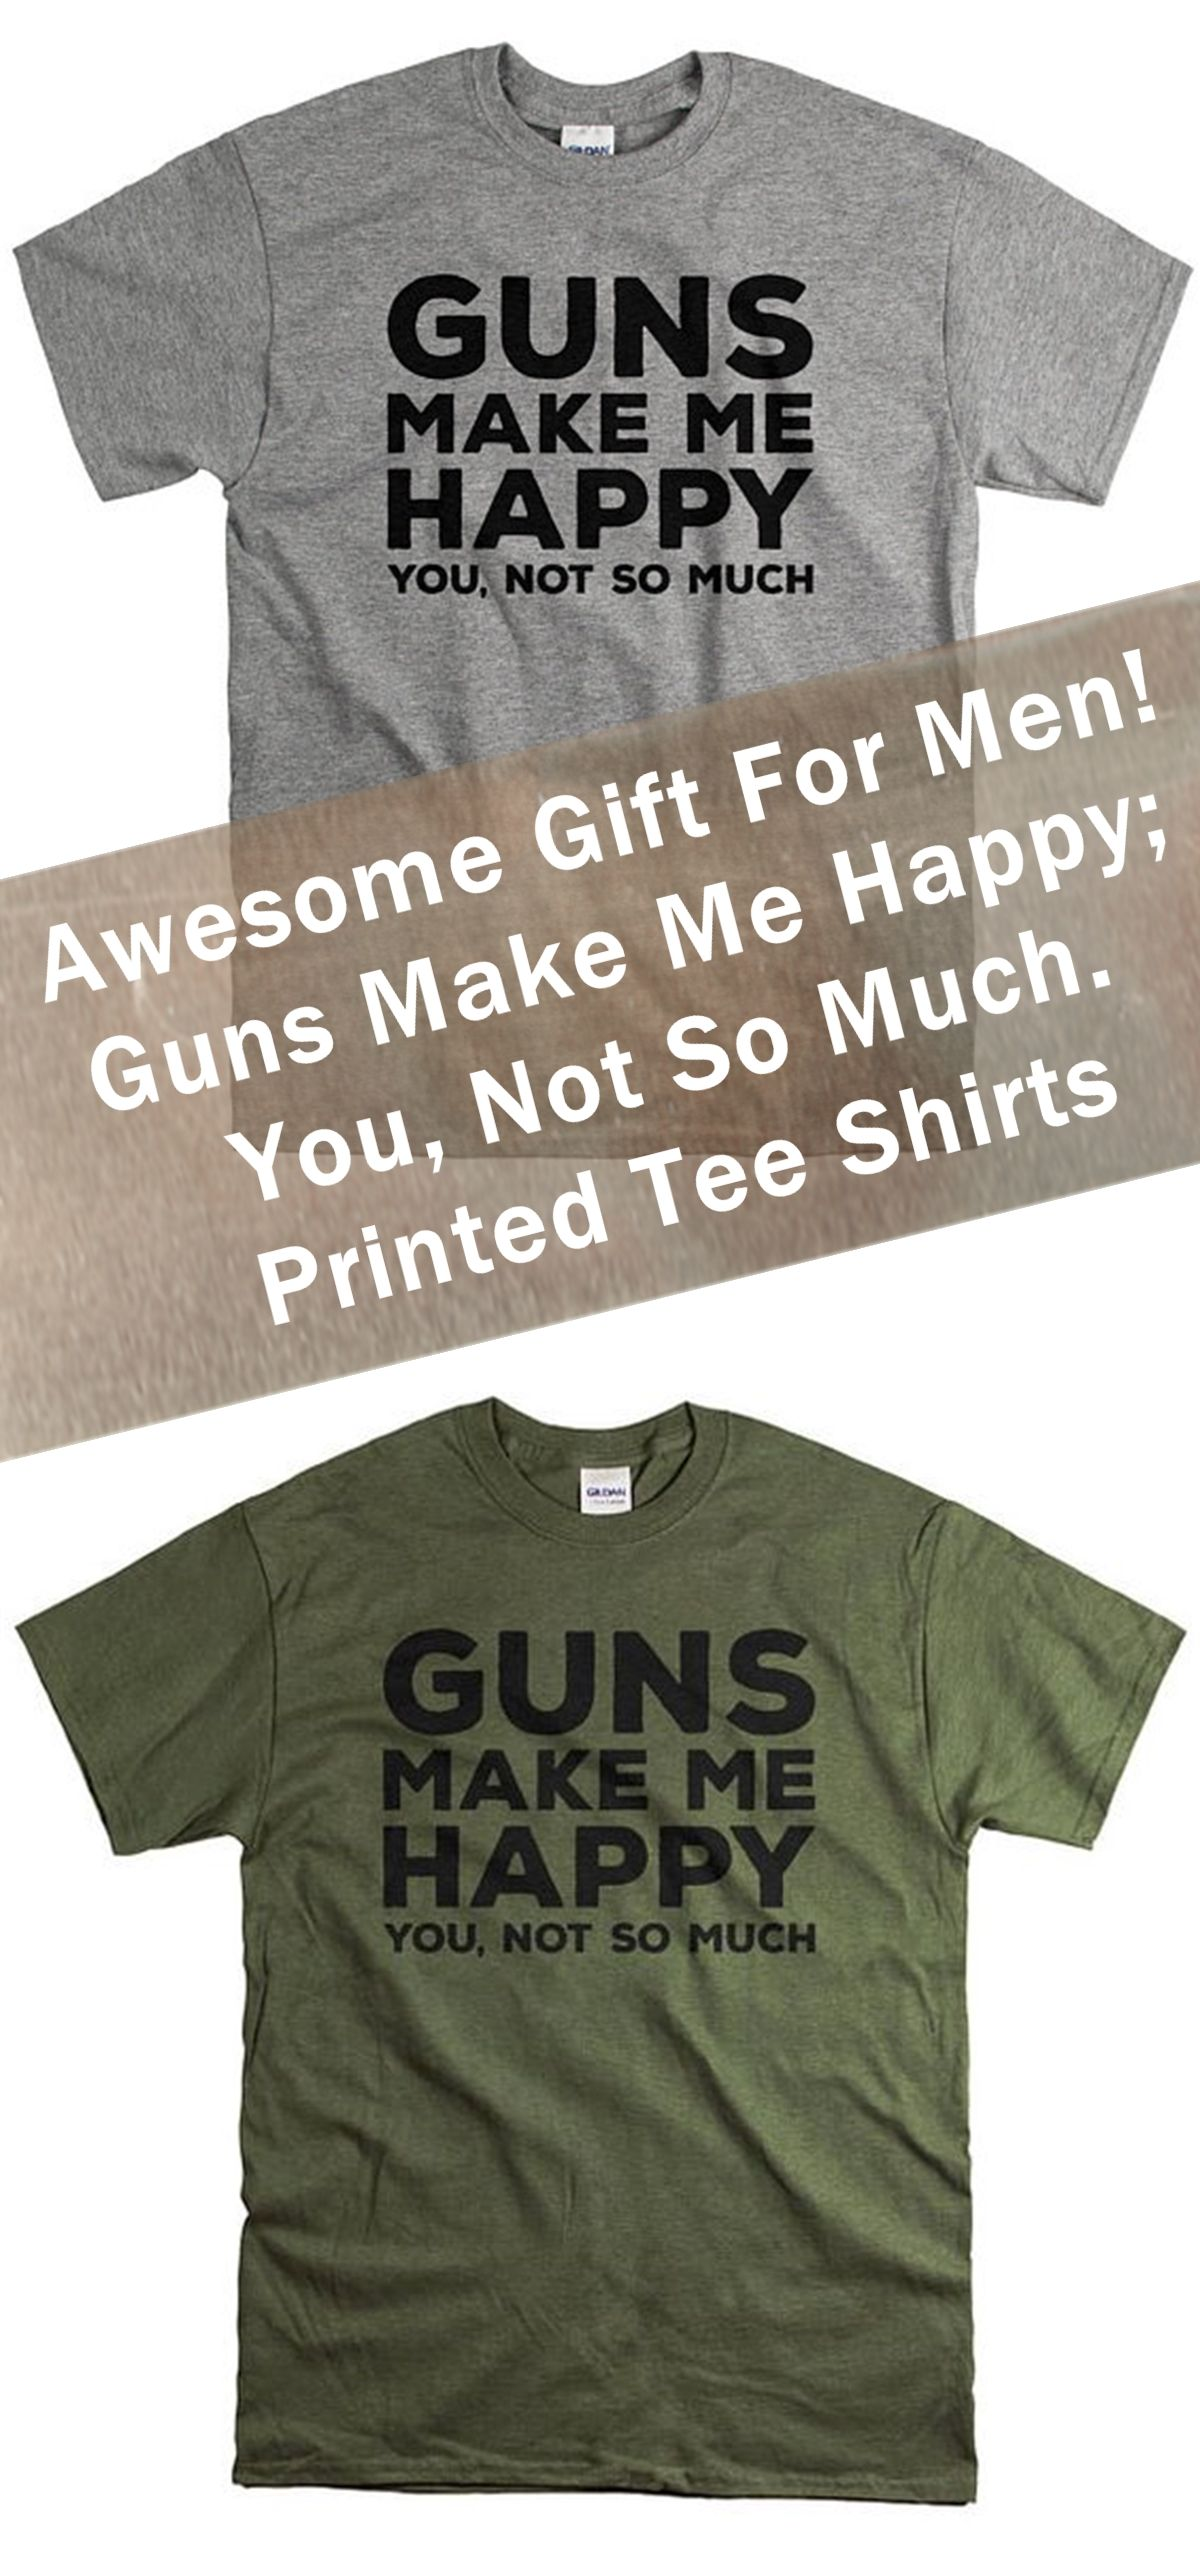 What To Buy For A Gun Lover 2021